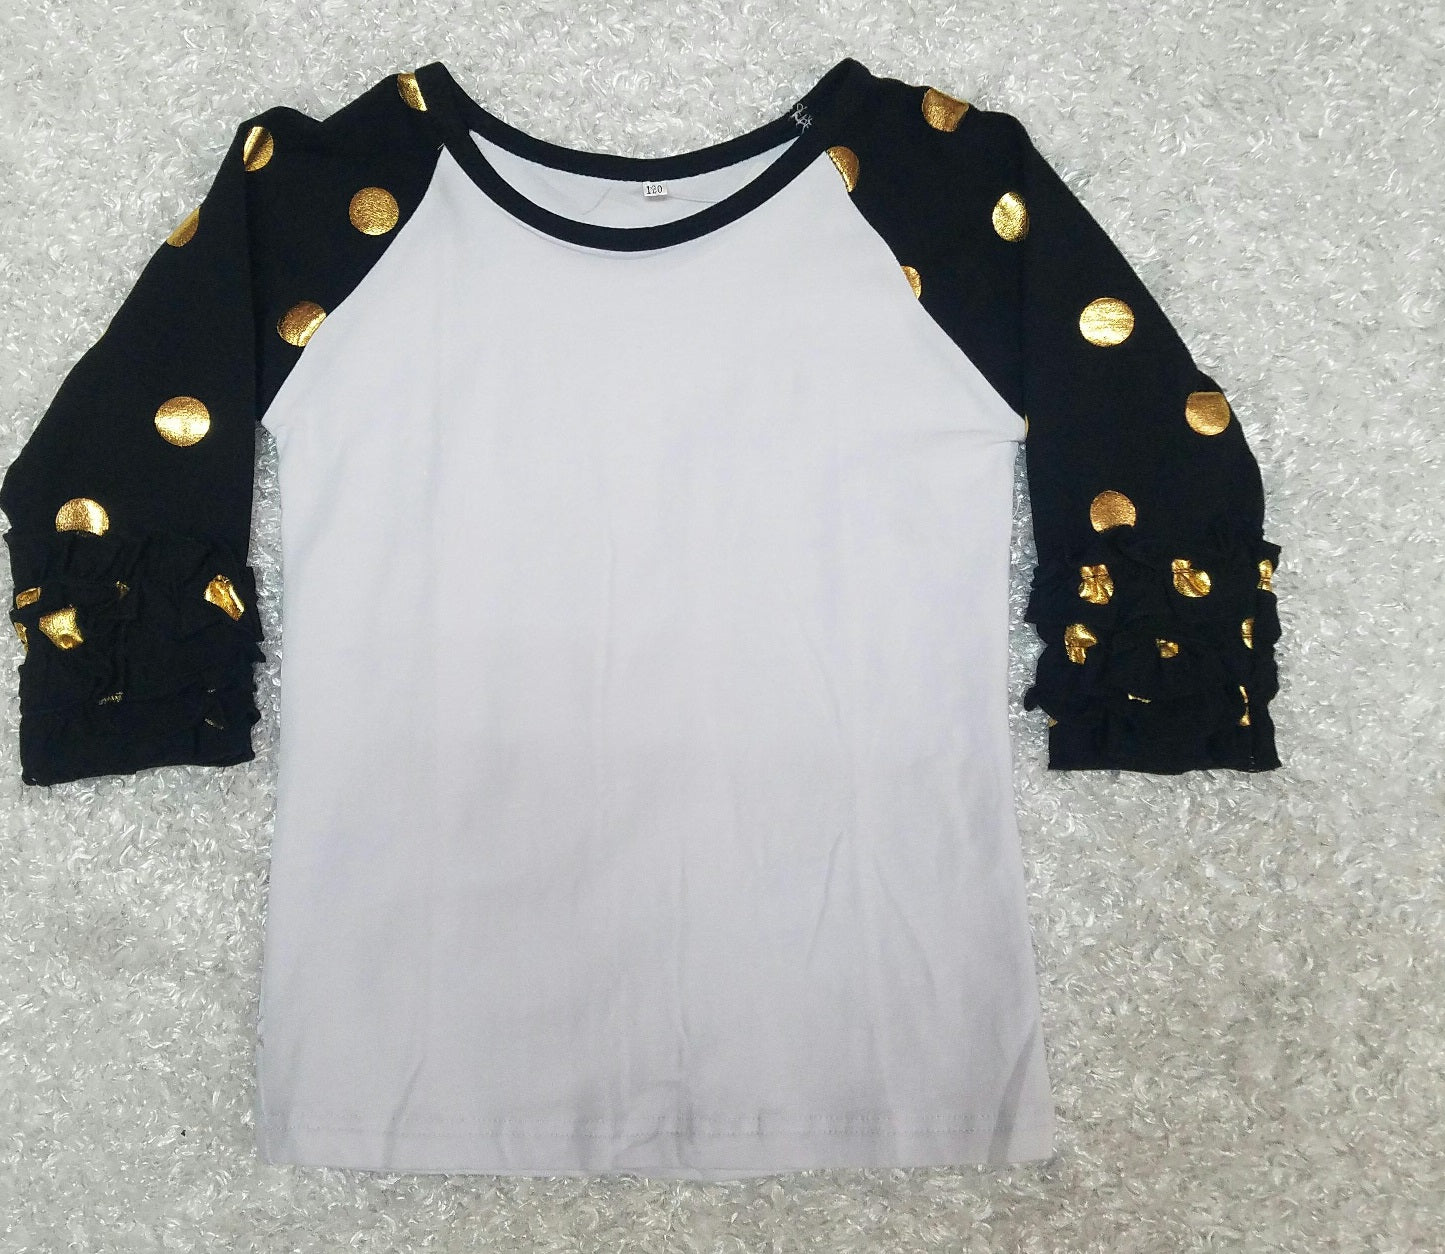 Black with Gold Polka Dots Raglan - Momma G's Children's Boutique, Screen Printing, Embroidery & More